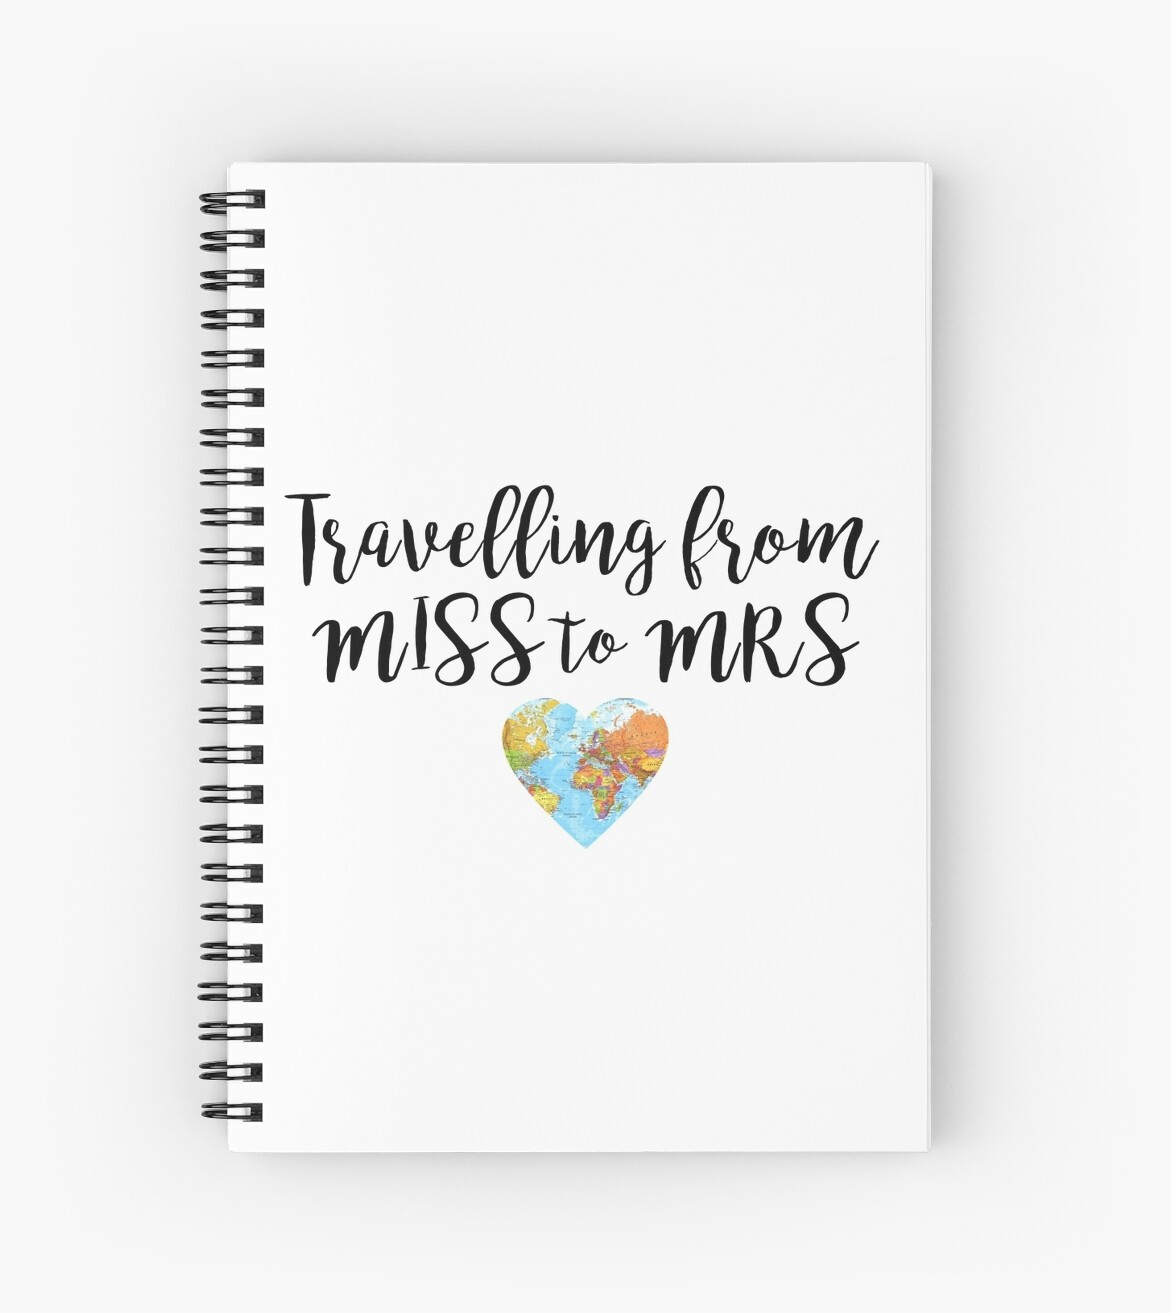 Favorite Wedding Abroad Travelling From Miss To Mrs By Quotation Park Wedding Abroad Travelling From Miss To Spiral Notebooks By Miss To Mrs Coupon Miss To Mrs Review inspiration Miss To Mrs